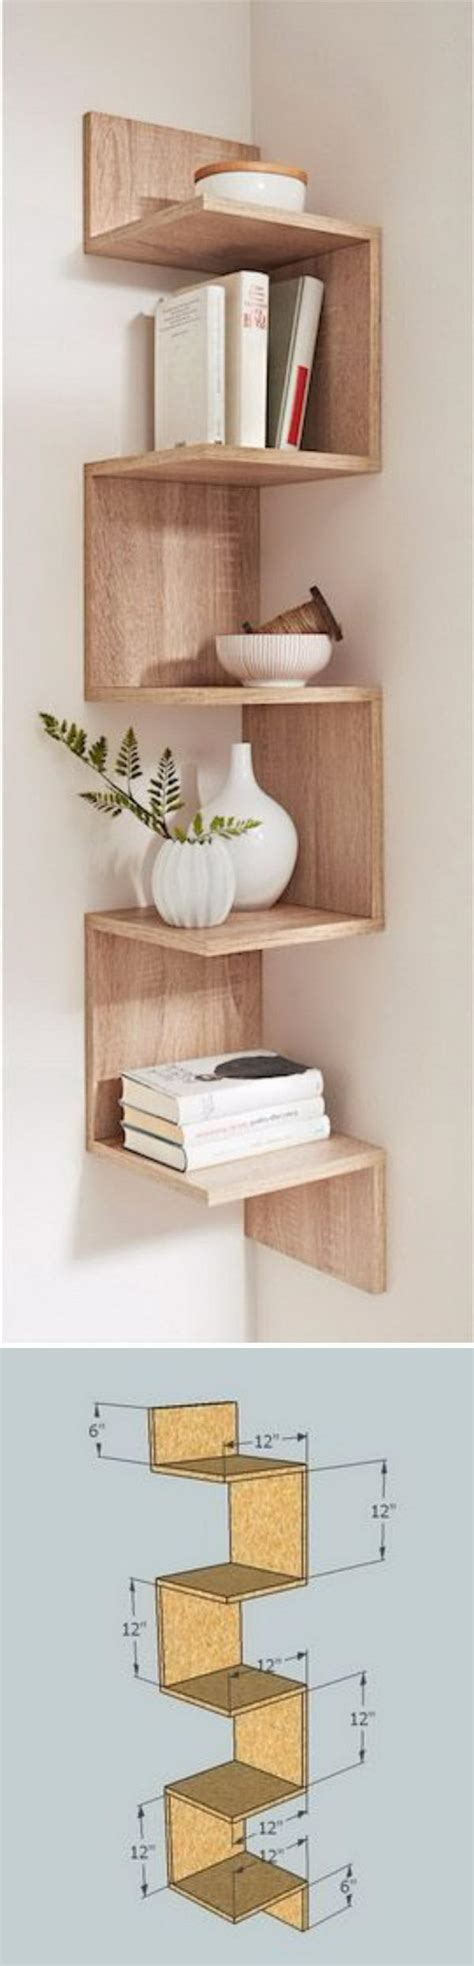 diy corner shelves  beautify  awkward corner